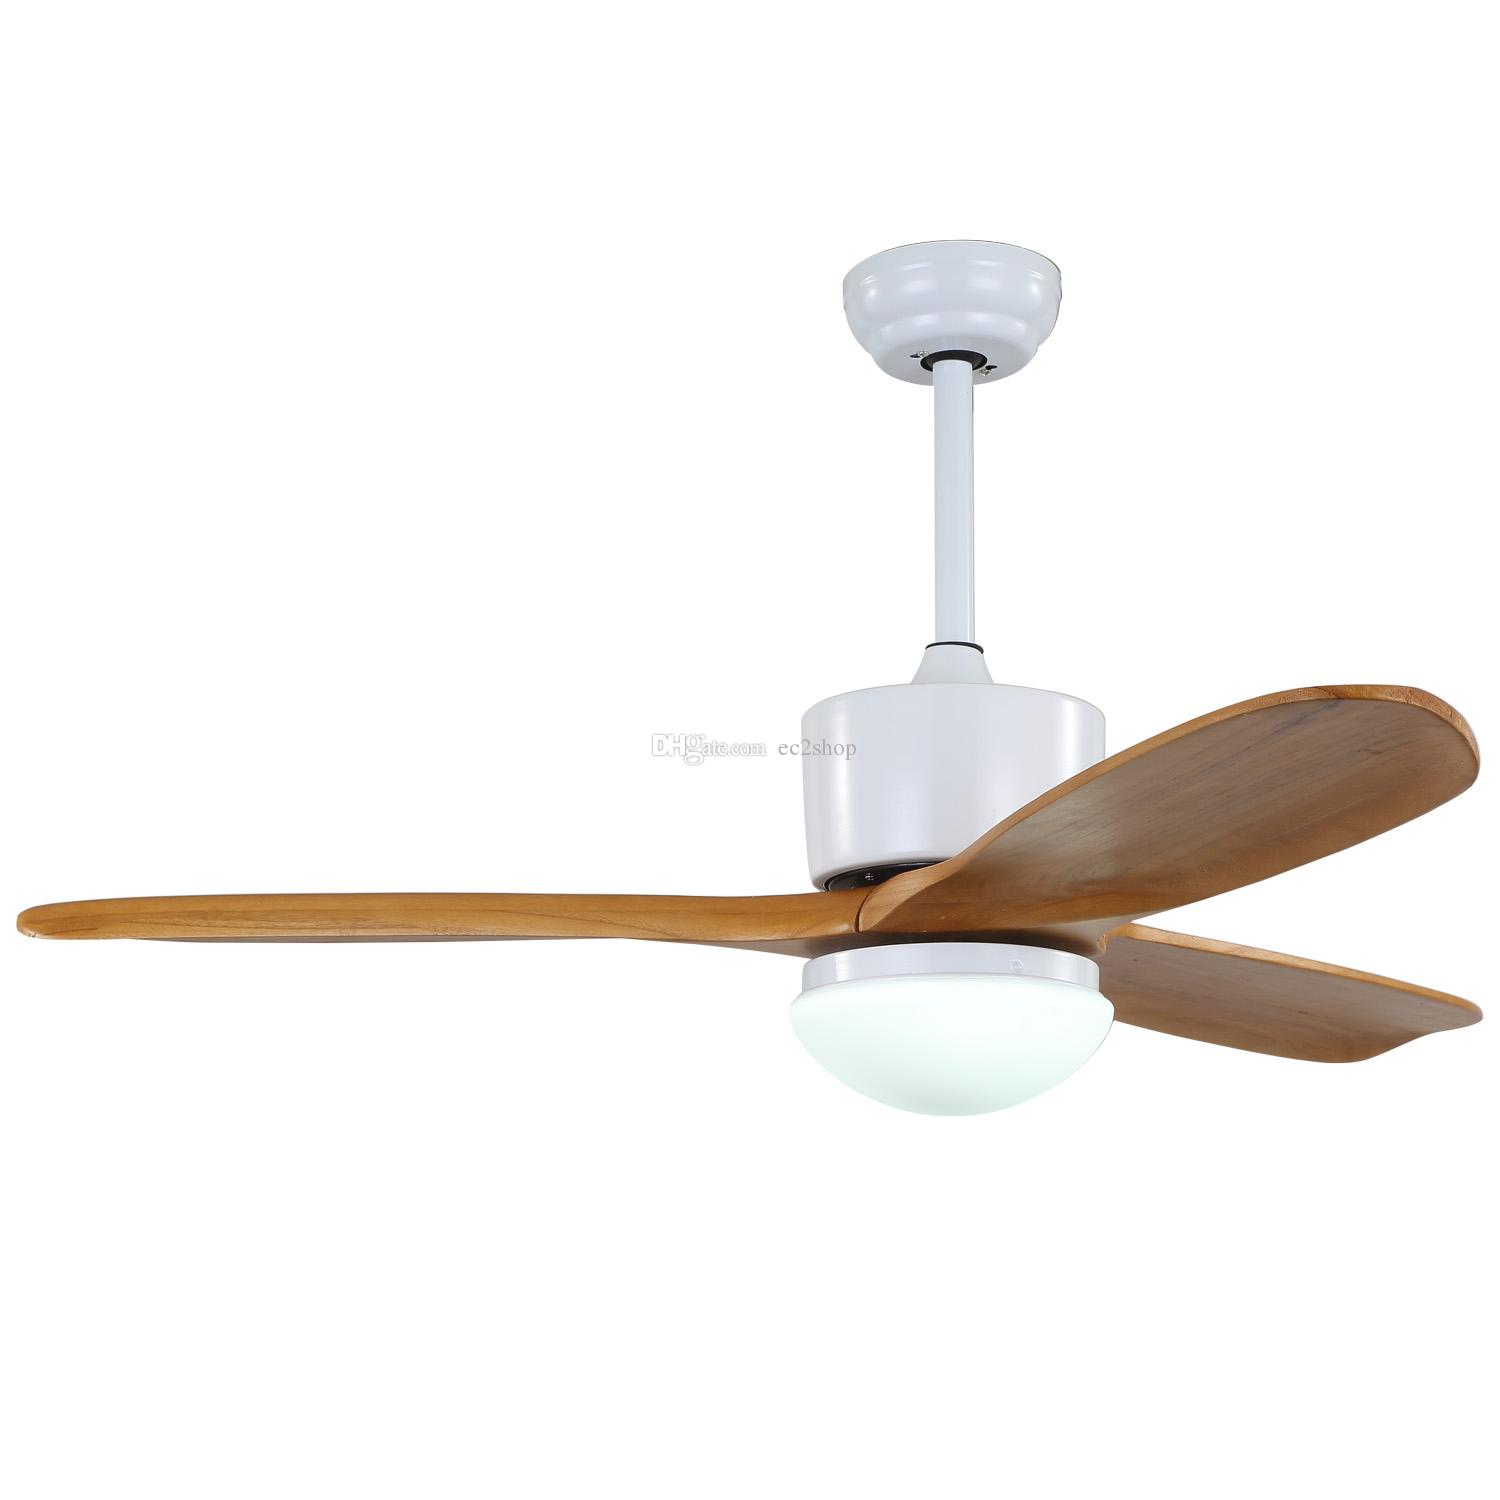 2018 China 48 Inch Outdoor Ceiling Fan With Light And Remote